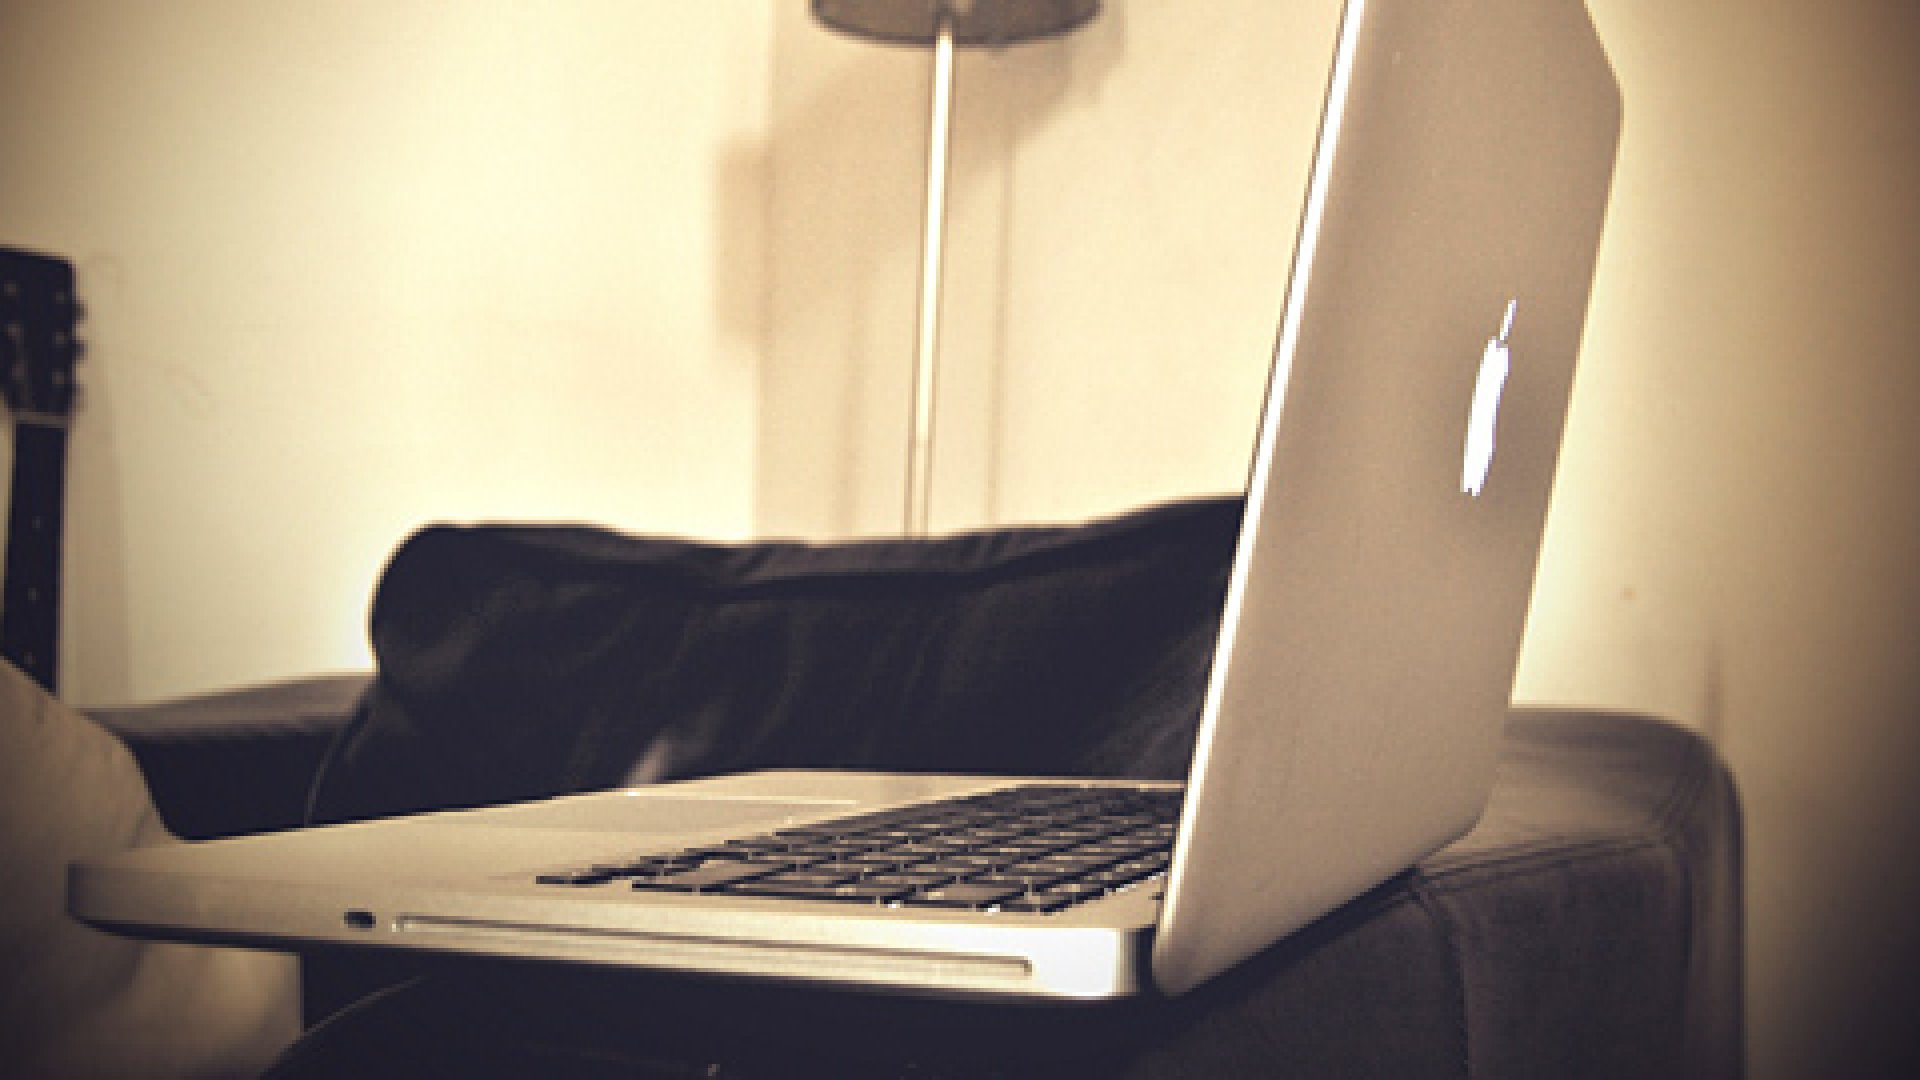 Is Your Home-Based Business Illegal?